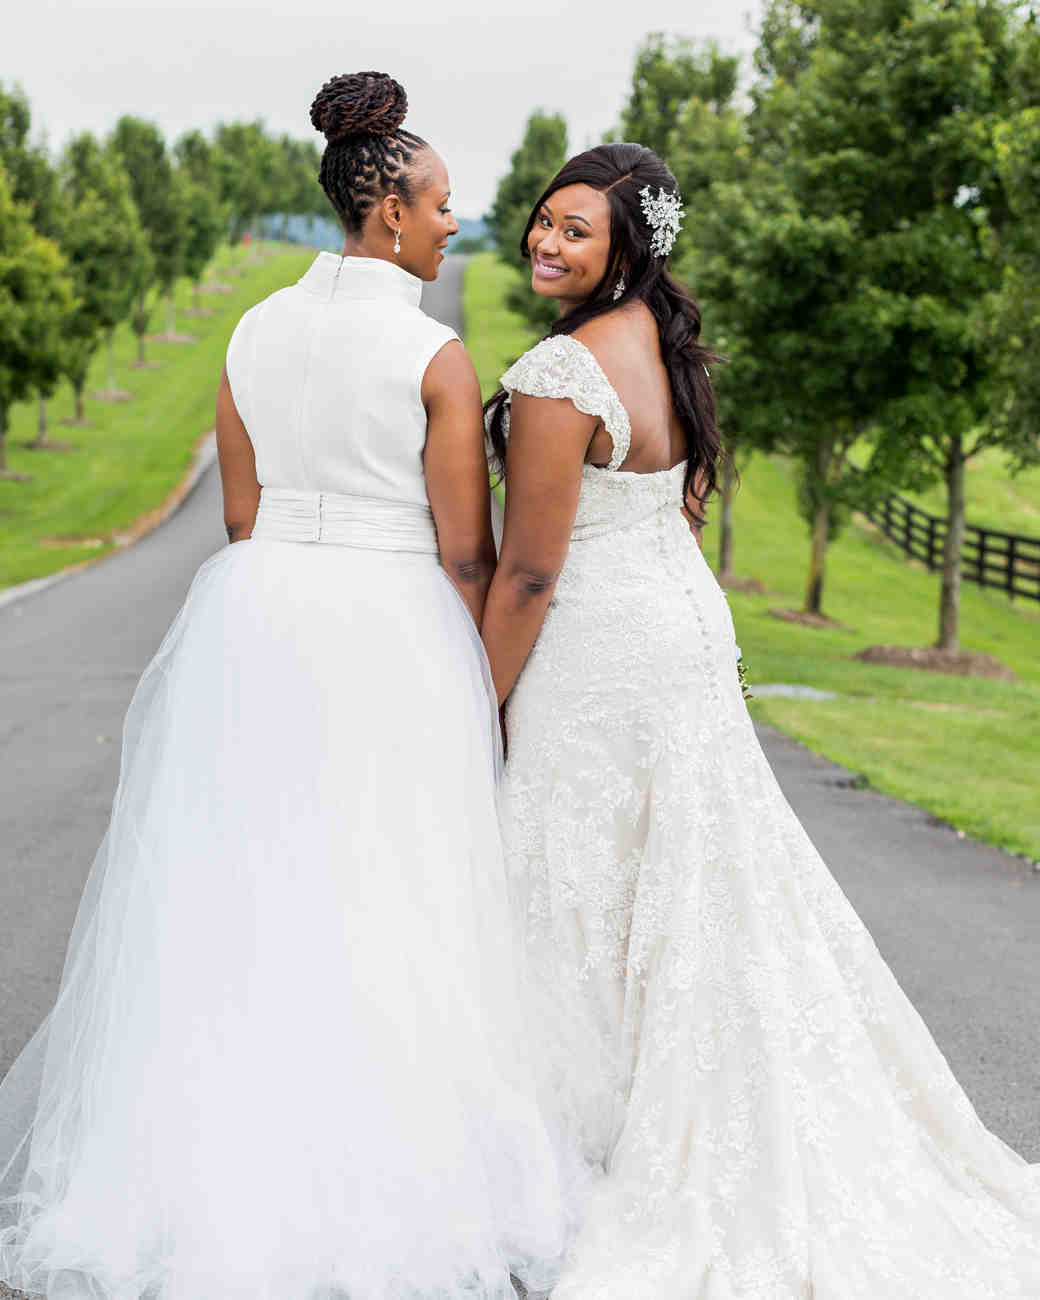 cara chamique wedding brides walking down path